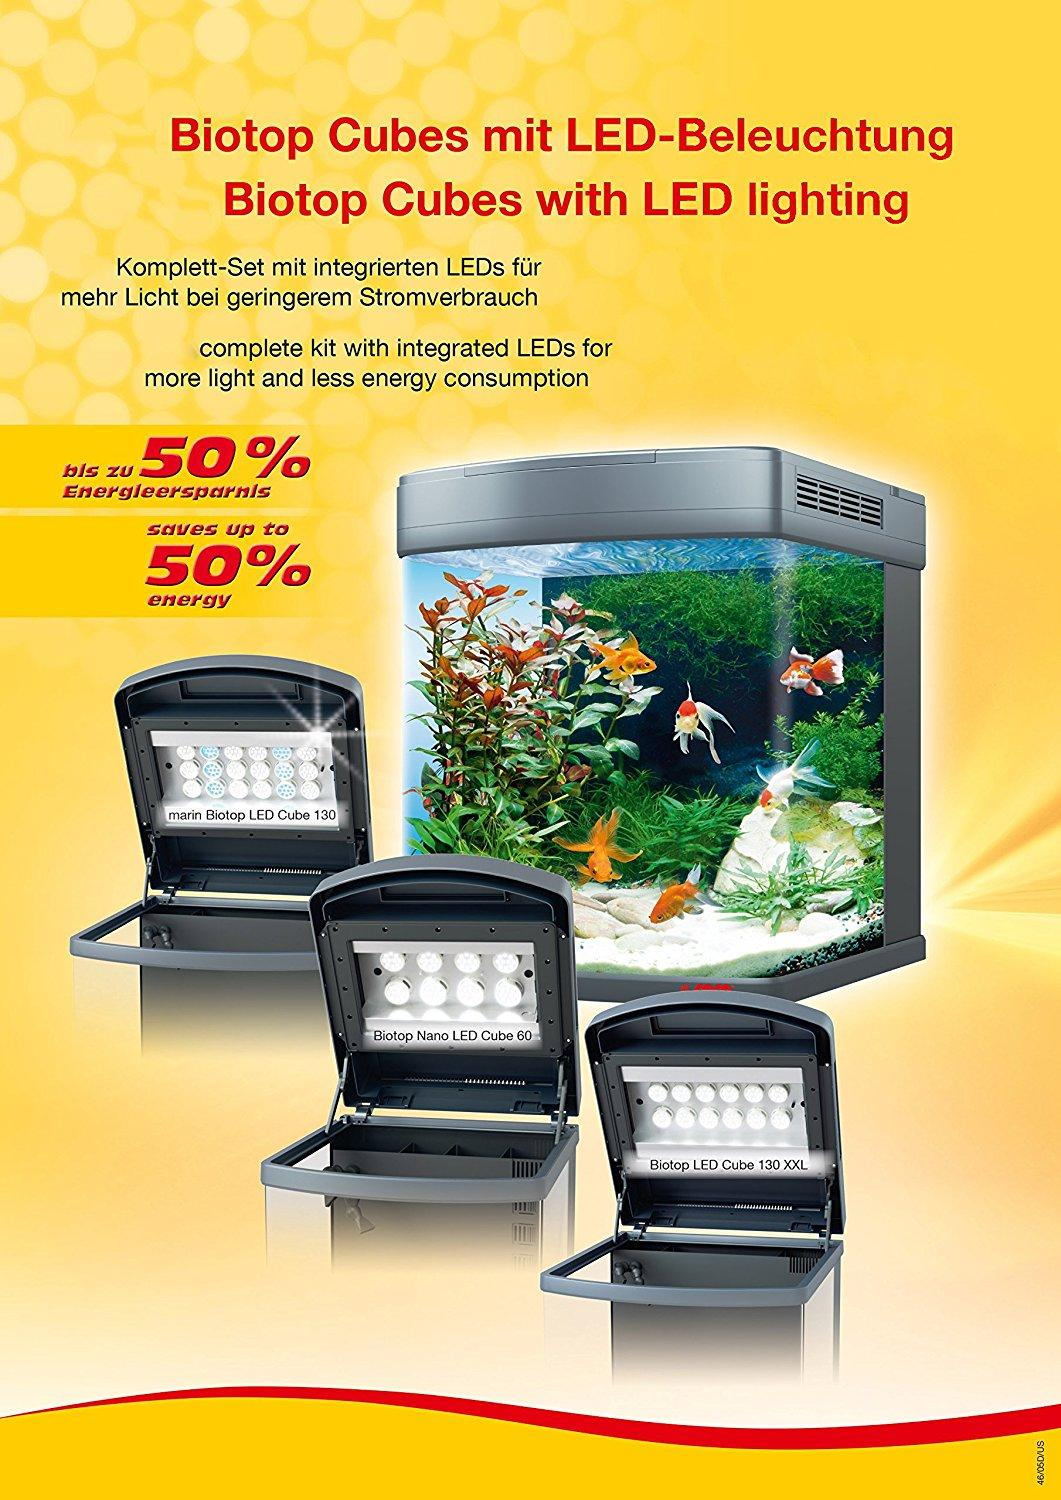 sera 31066 biotop nano led cube 16 ein 16 l s wasser nano komplettaquarium mit led beleuchtung. Black Bedroom Furniture Sets. Home Design Ideas